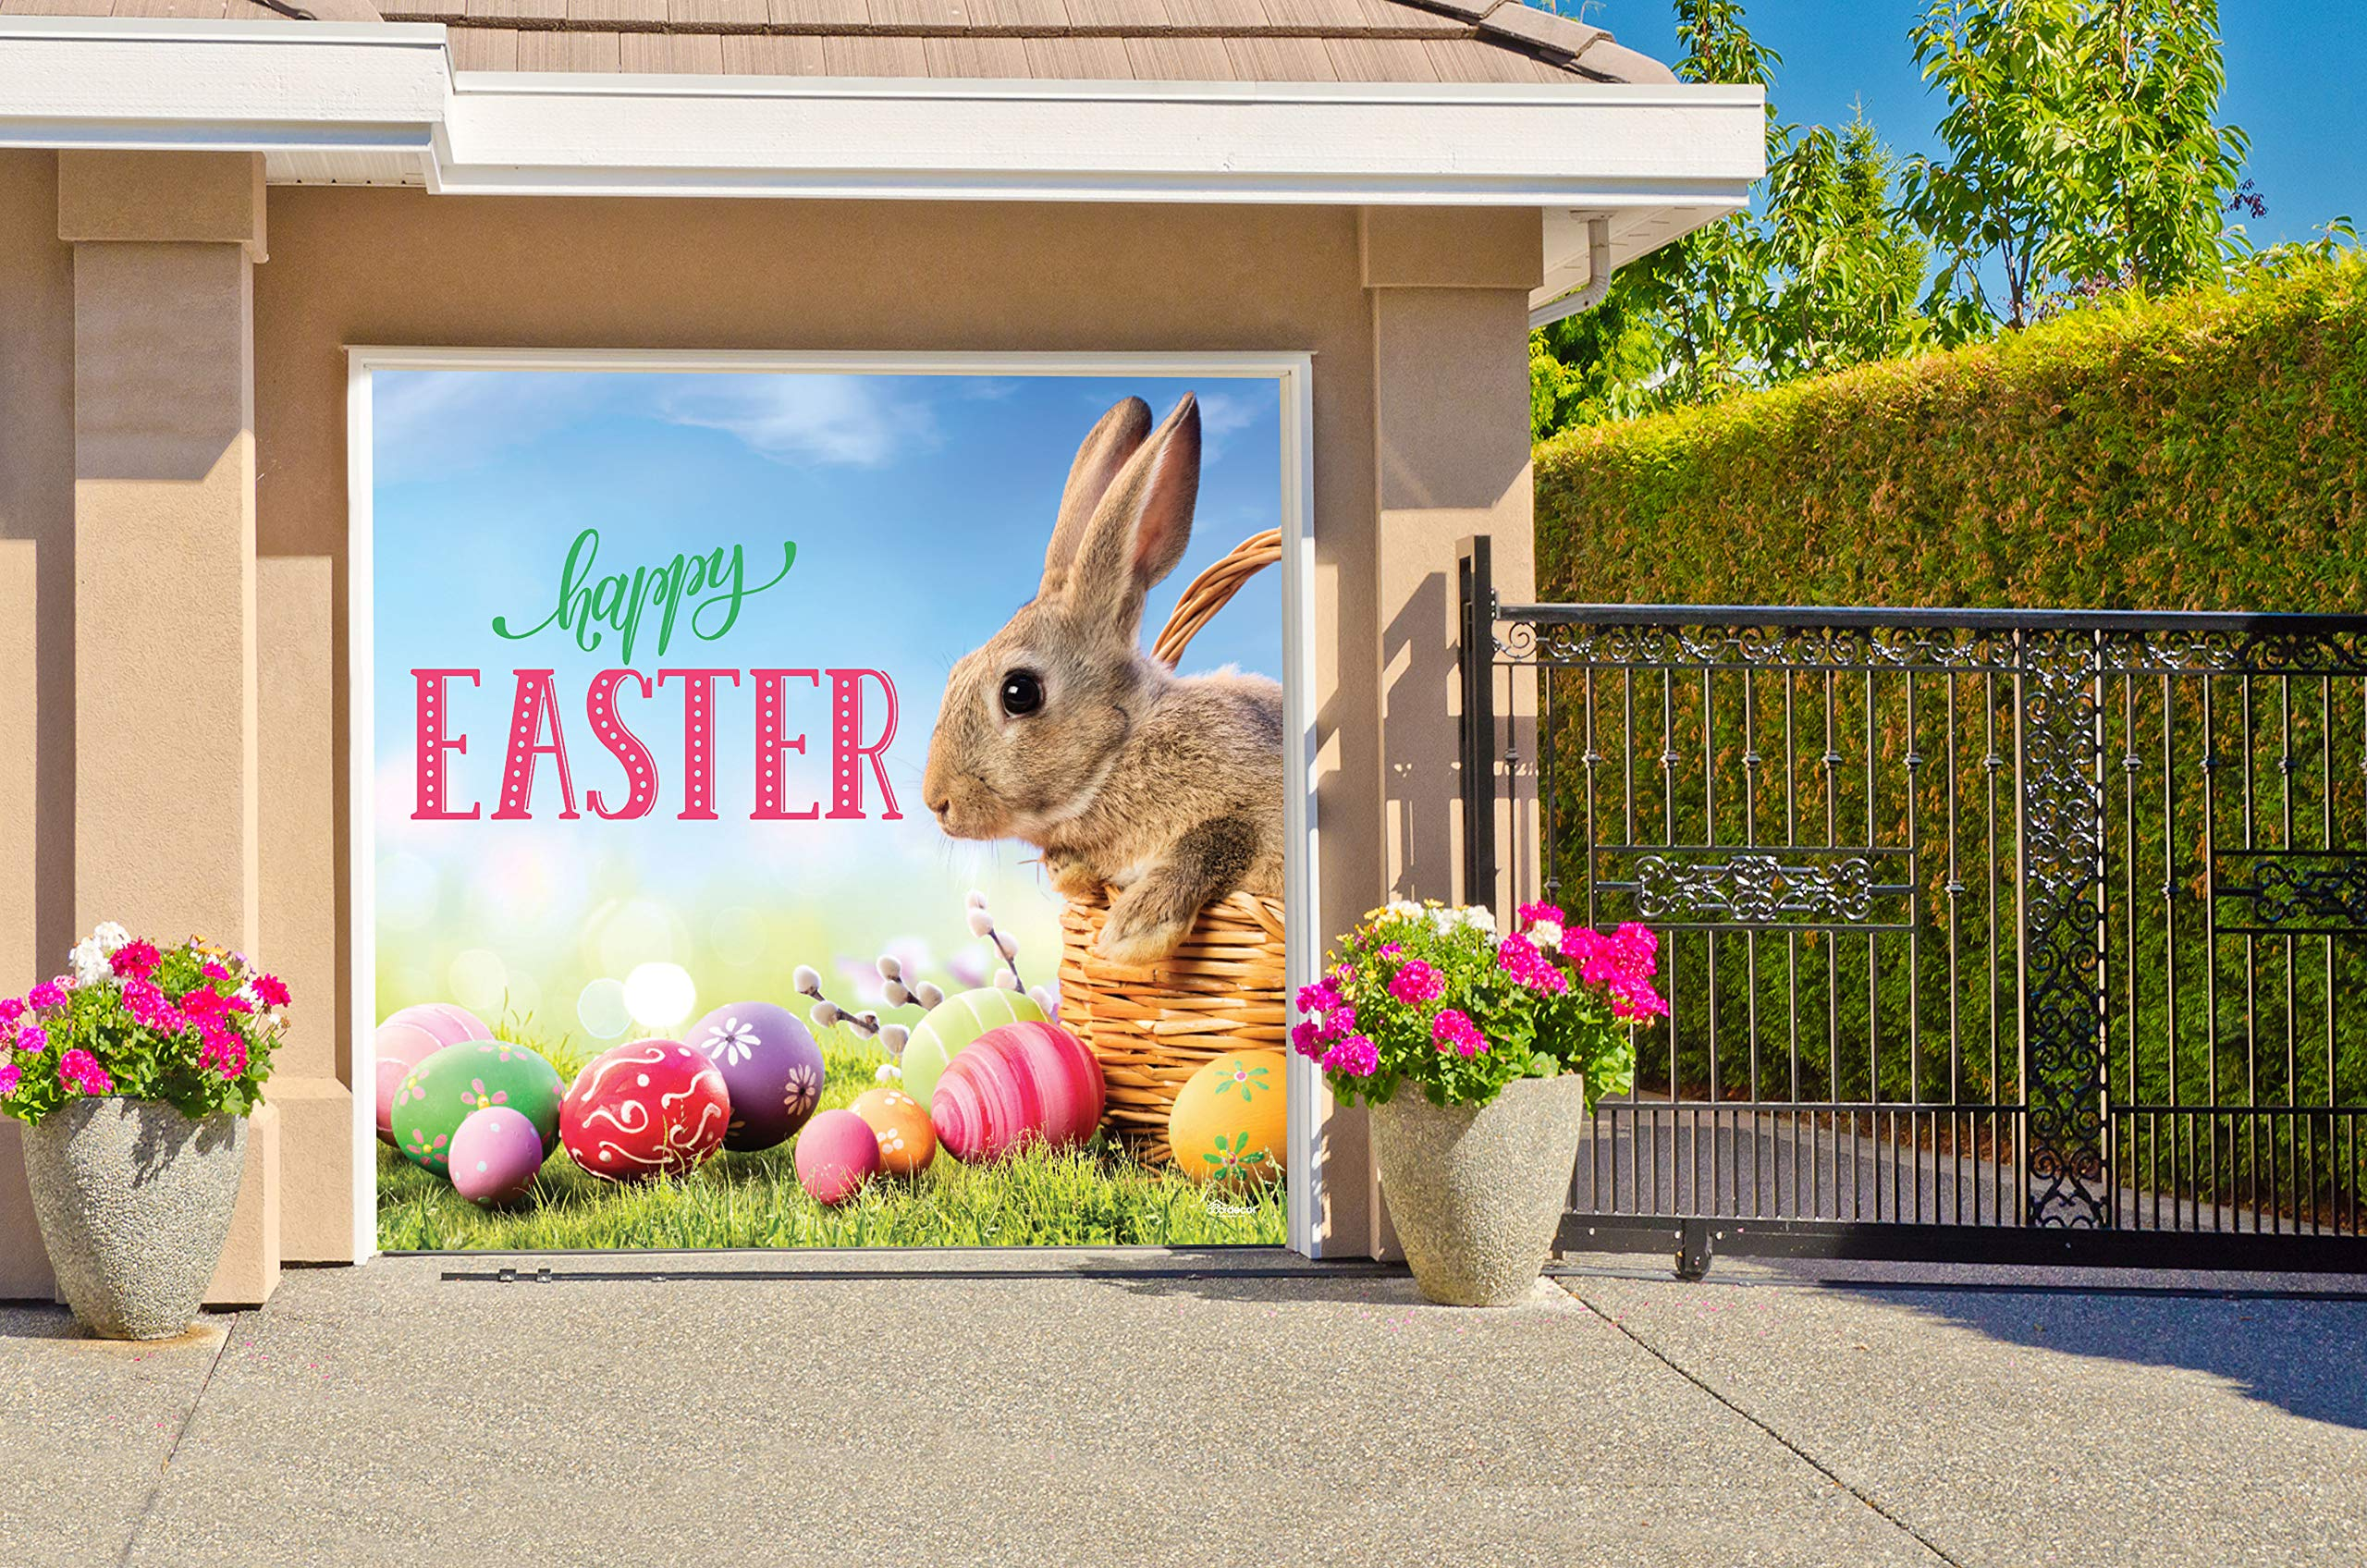 Victory Corps Happy Easter Bunny Basket - Holiday Garage Door Banner Mural Sign Décor 7'x 8' Car Garage - The Original Holiday Garage Door Banner Decor